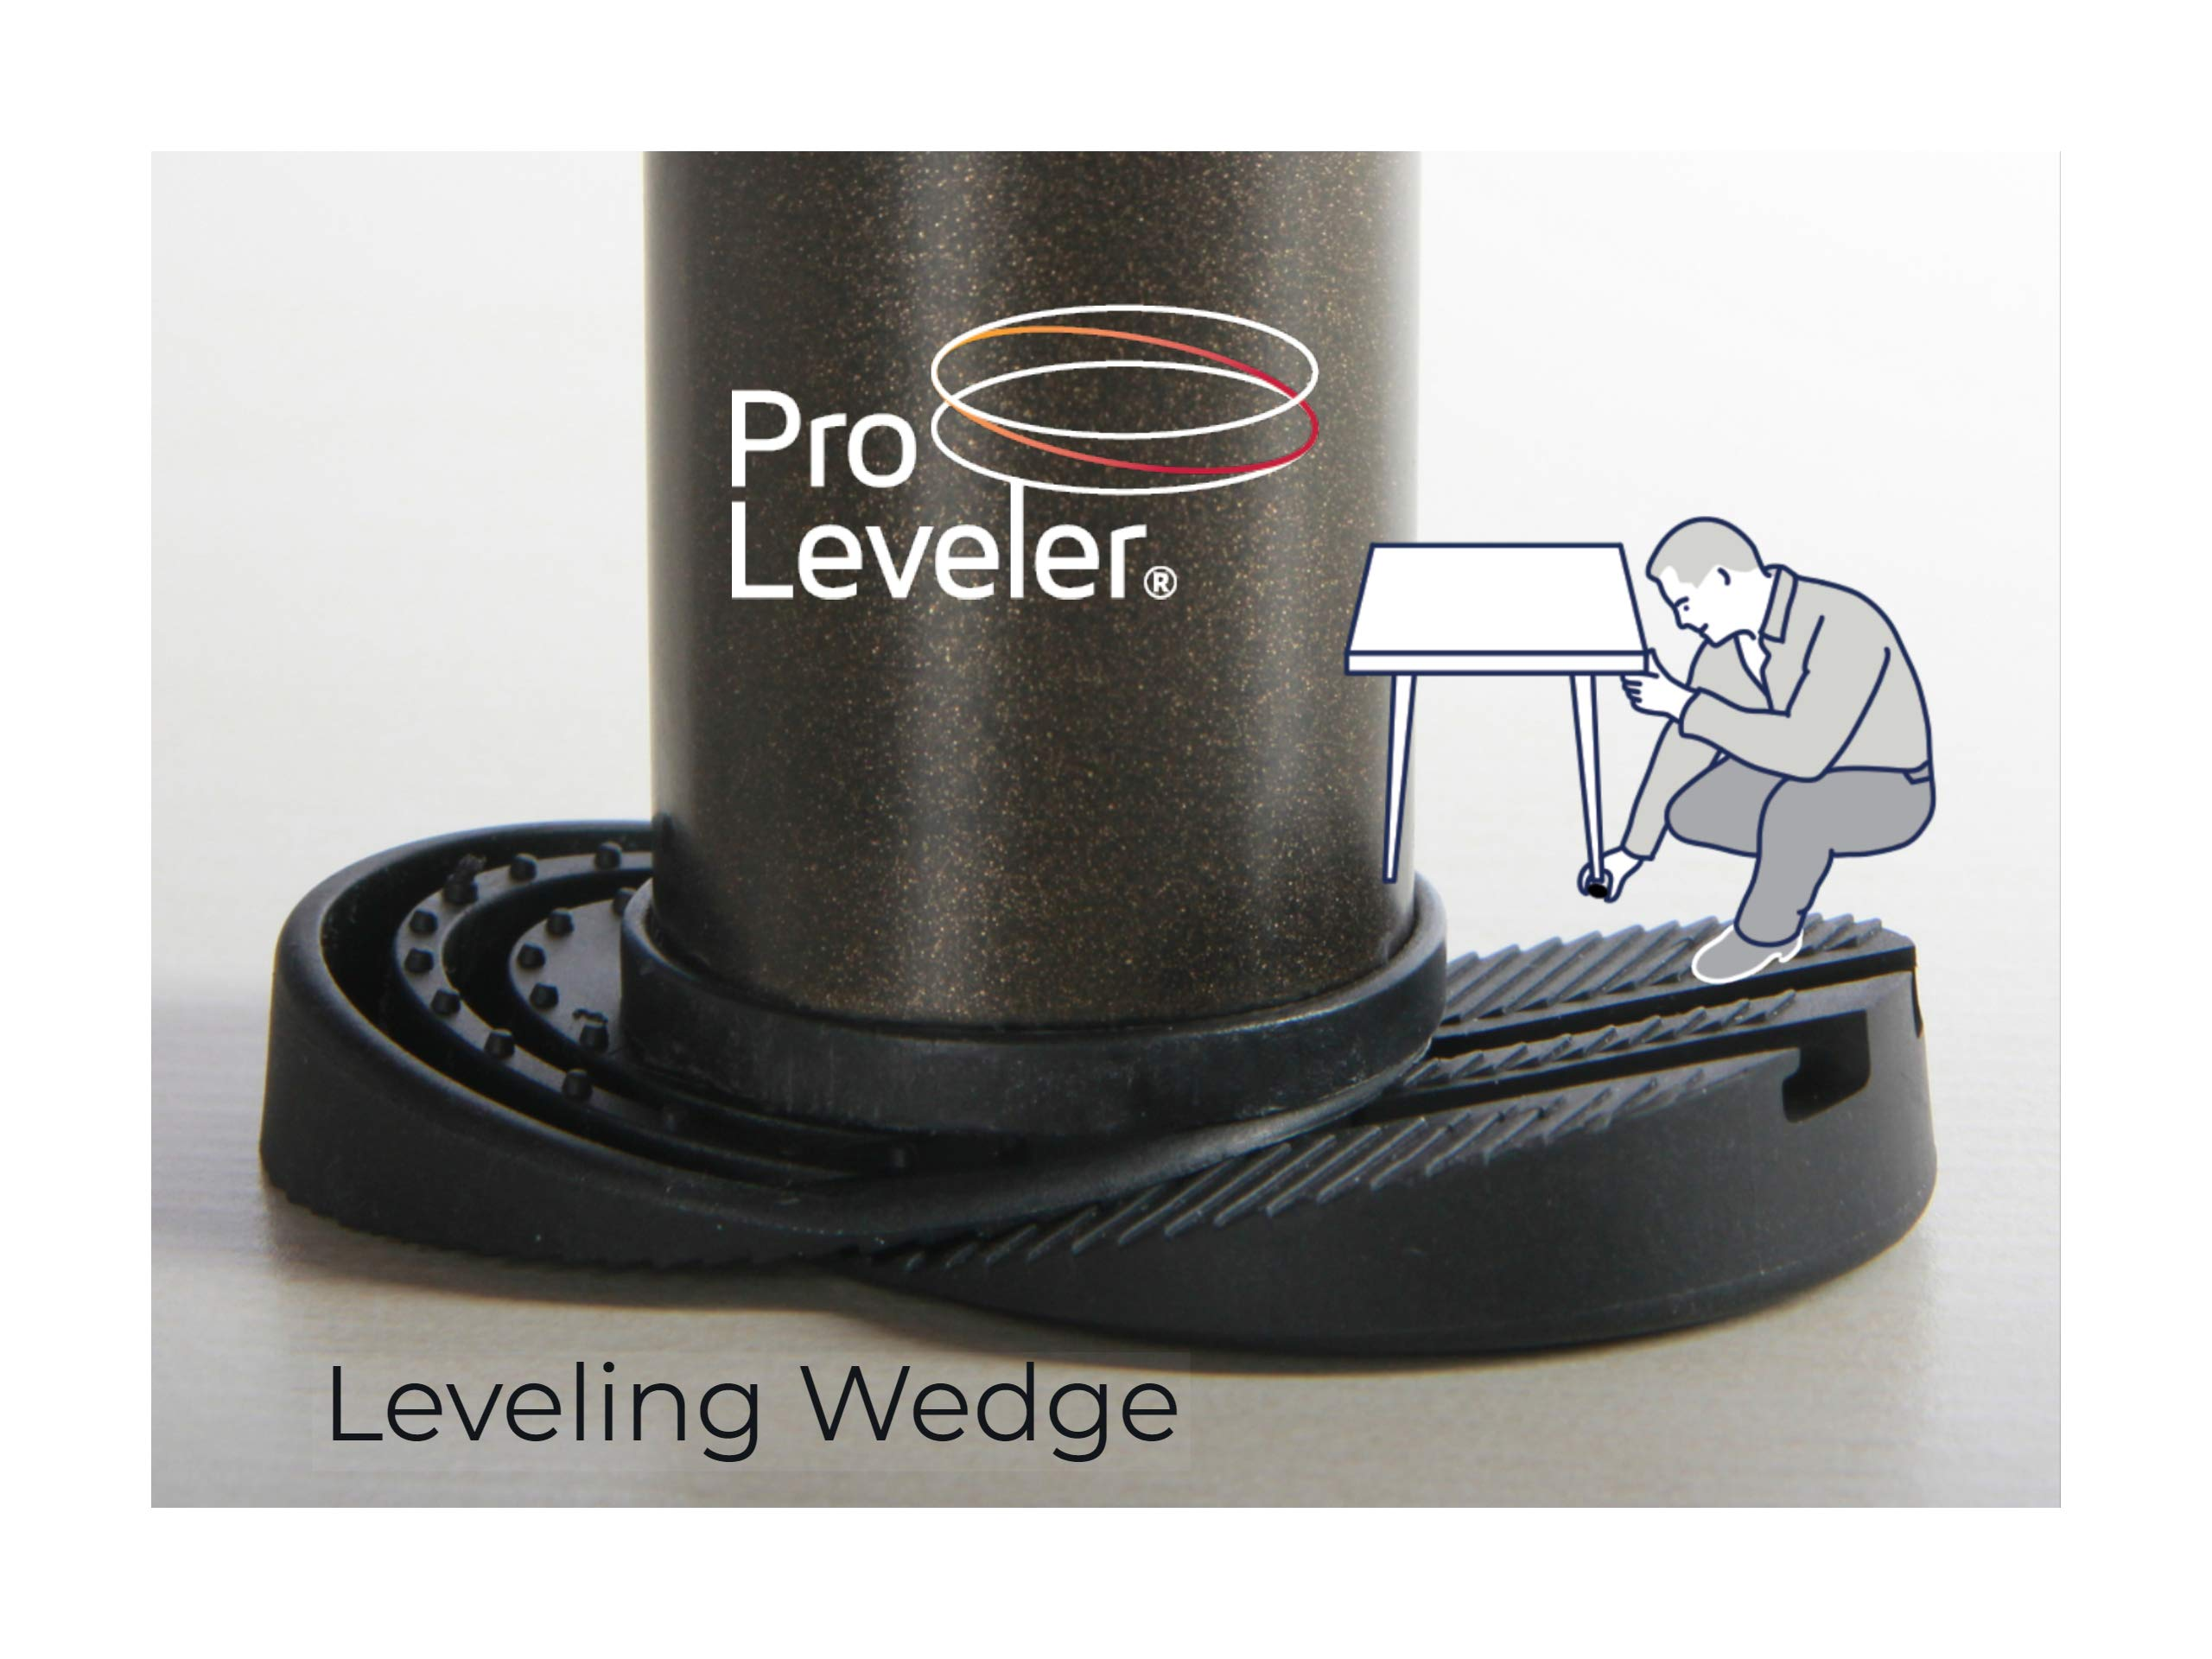 Leveling Wedge 12-Set Pack $20.00 for Wobbly Restaurant, Patio Tables and Furniture by Pro Leveler